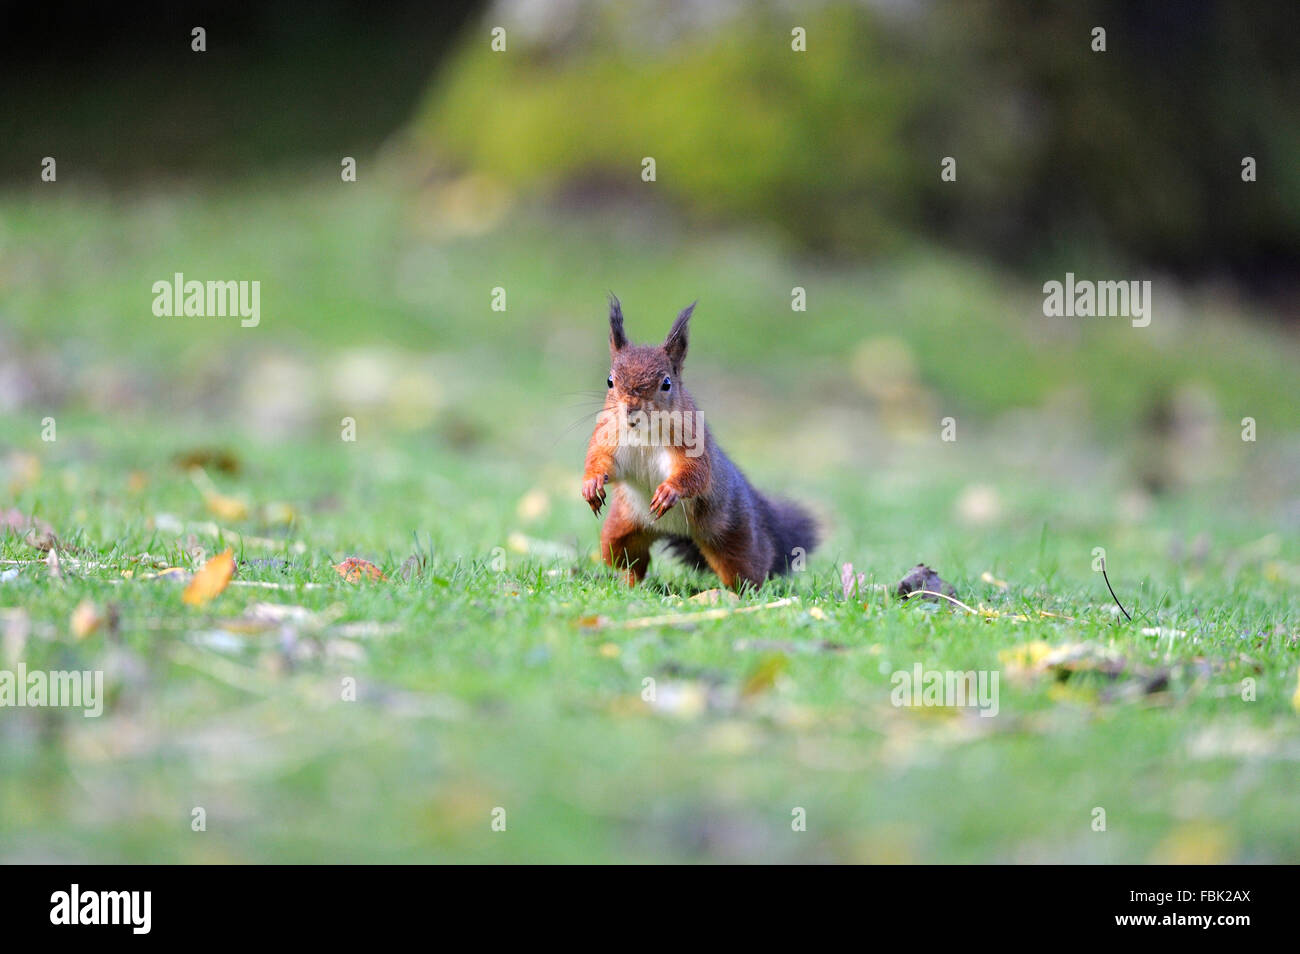 Red Squirrel (Sciurus vulgaris) leaping forward, on garden lawn, in the Newlands Valley, near Keswick, Cumbria, - Stock Image